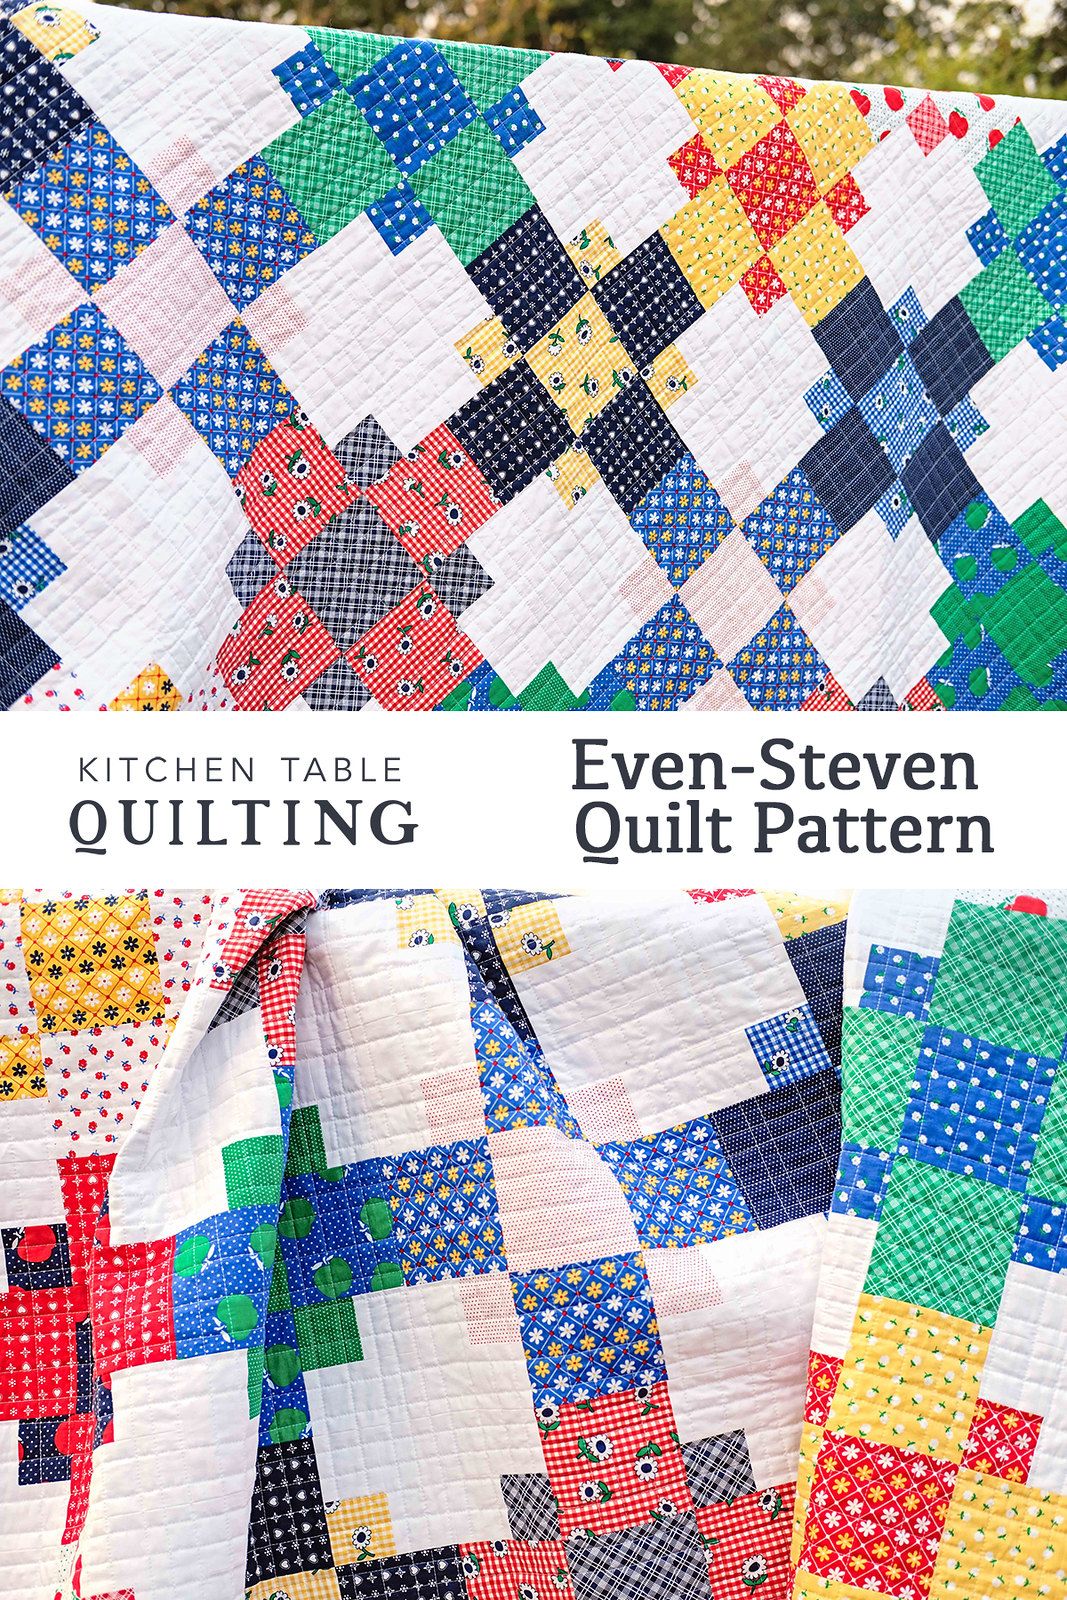 Sunnyside Ave Even Steven Quilt - Kitchen Table Quilting